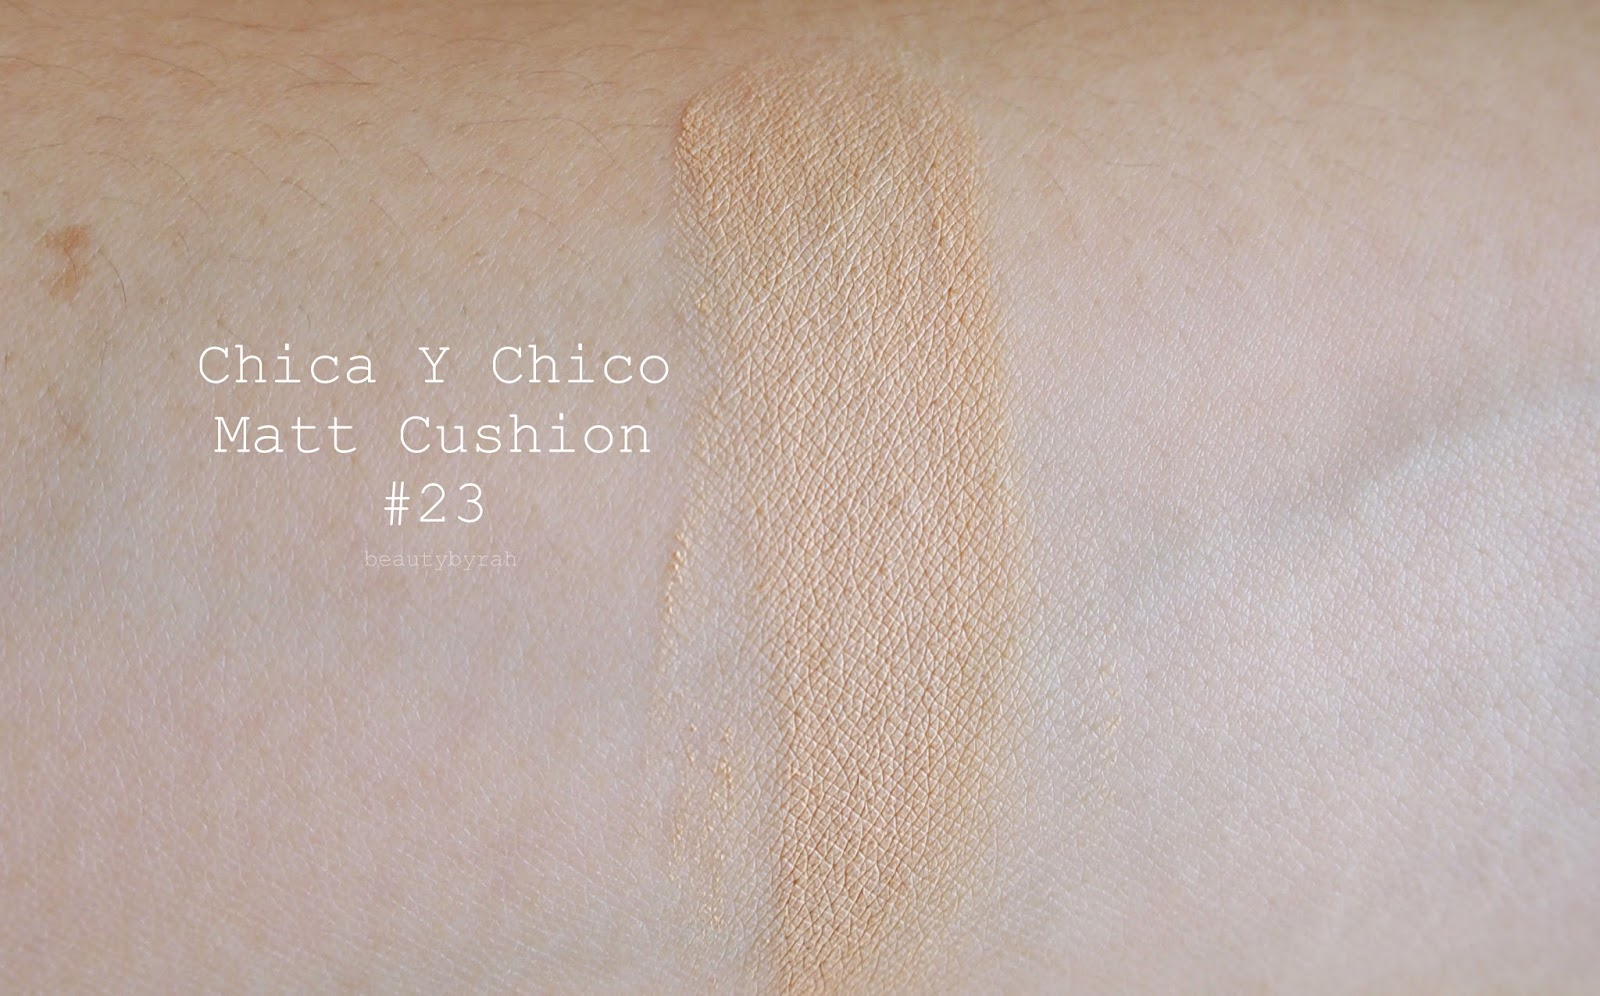 Chica Y Chico Matt Cushion 23 swatch